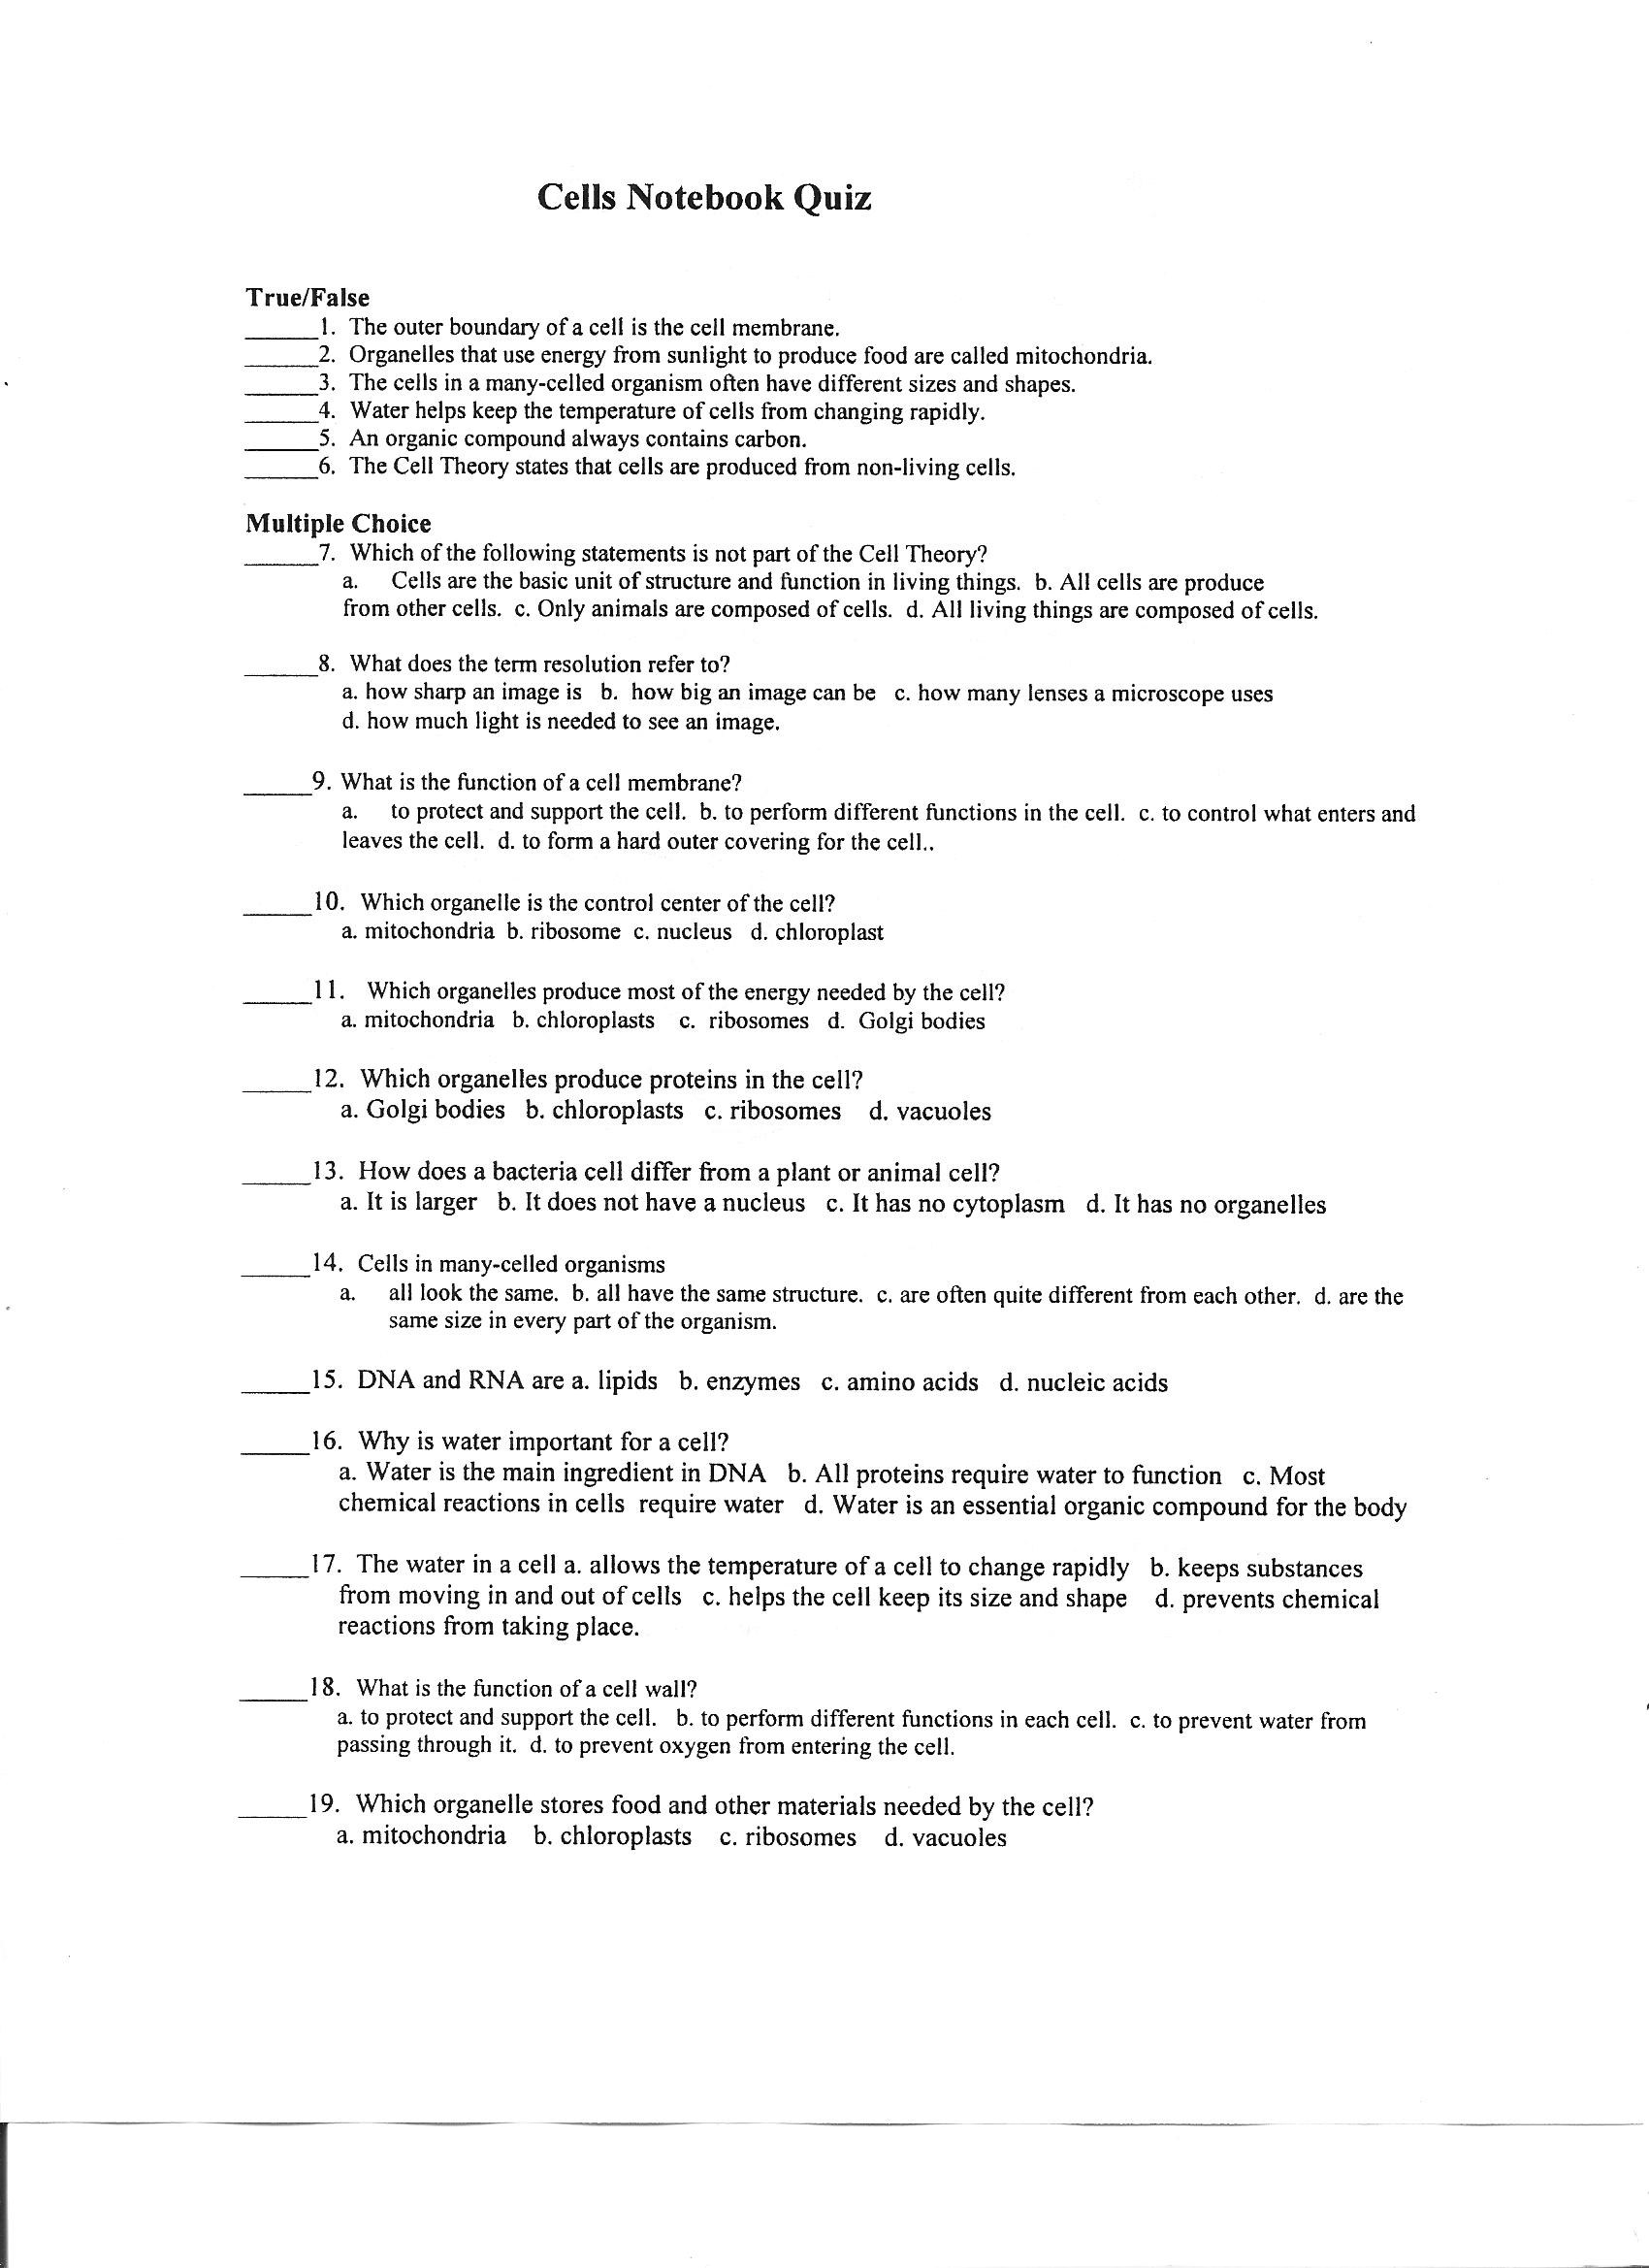 worksheet Looking Inside Cells Worksheet Answers canyon lake middle school cell unit test study guide 001 jpg